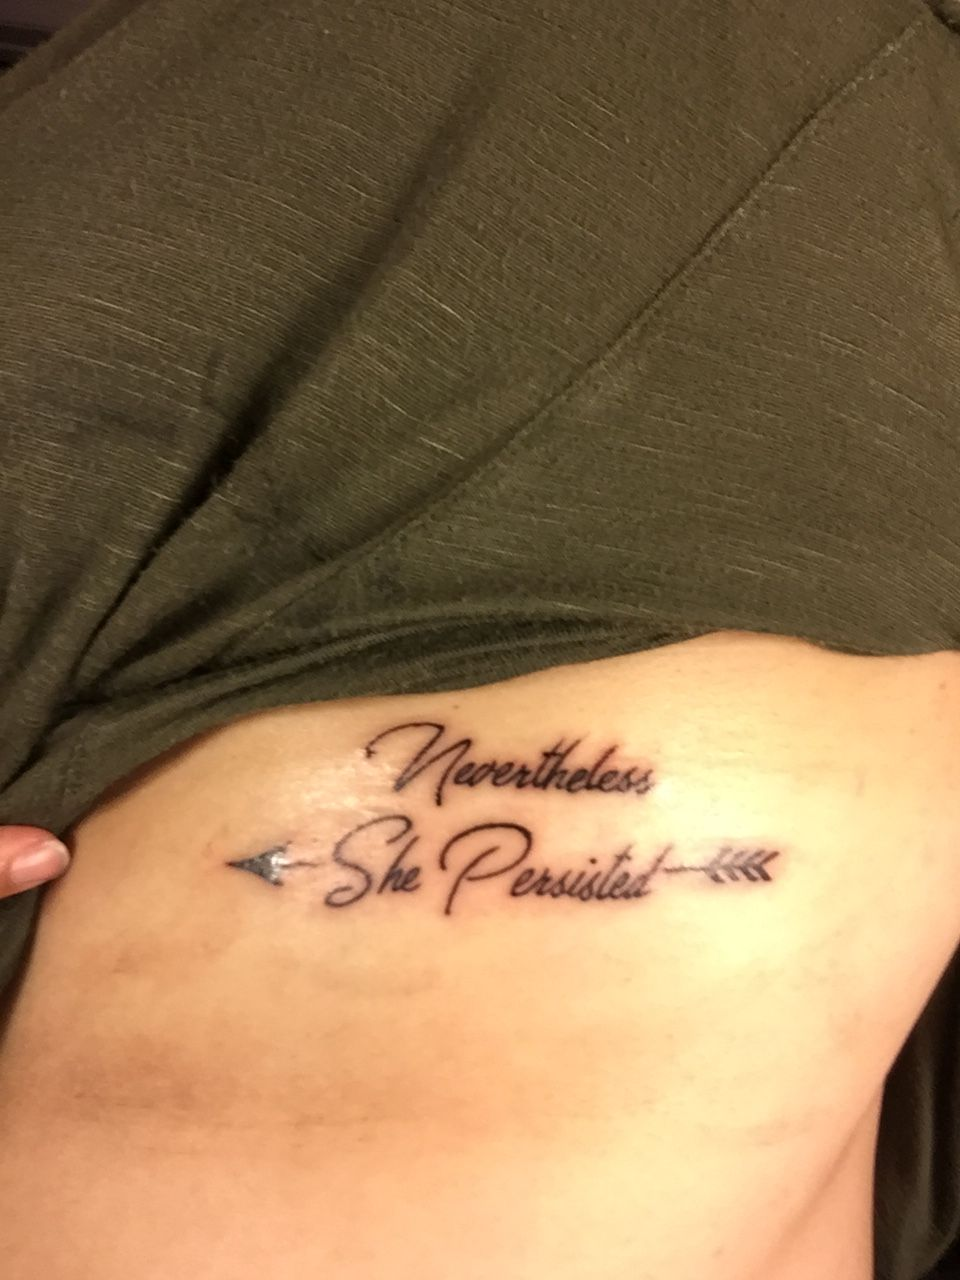 52e998707 Nevertheless, she persisted tattoo | Design | Tattoos, Body art ...